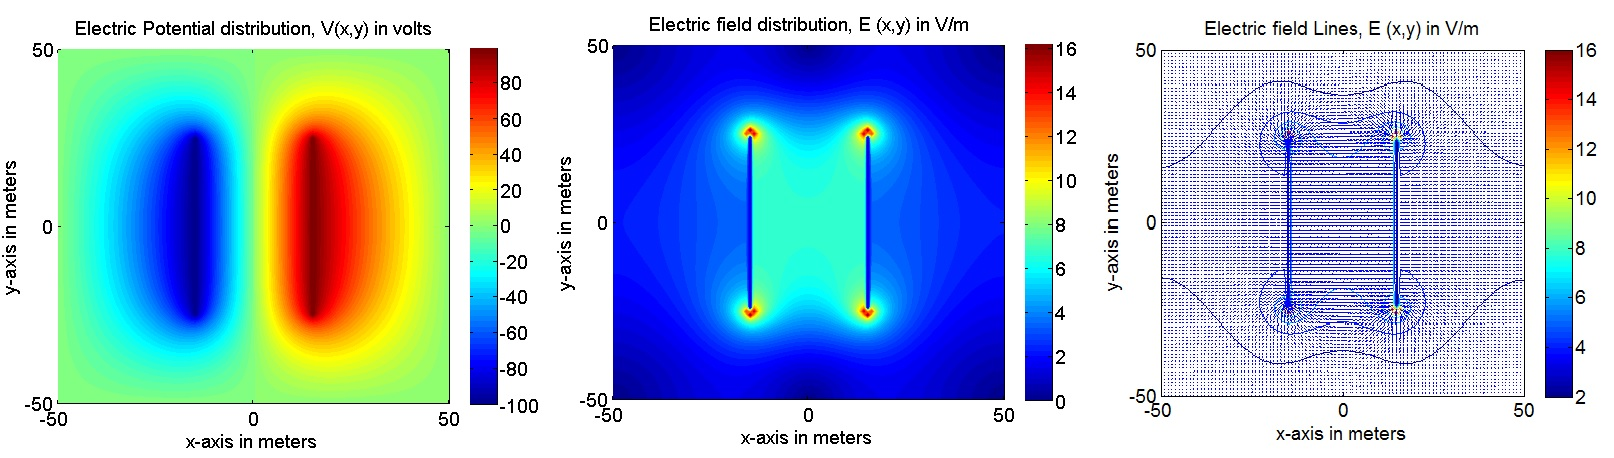 Line Drawing Algorithm Using Matlab : Electric field of a parallel plate capacitor using d